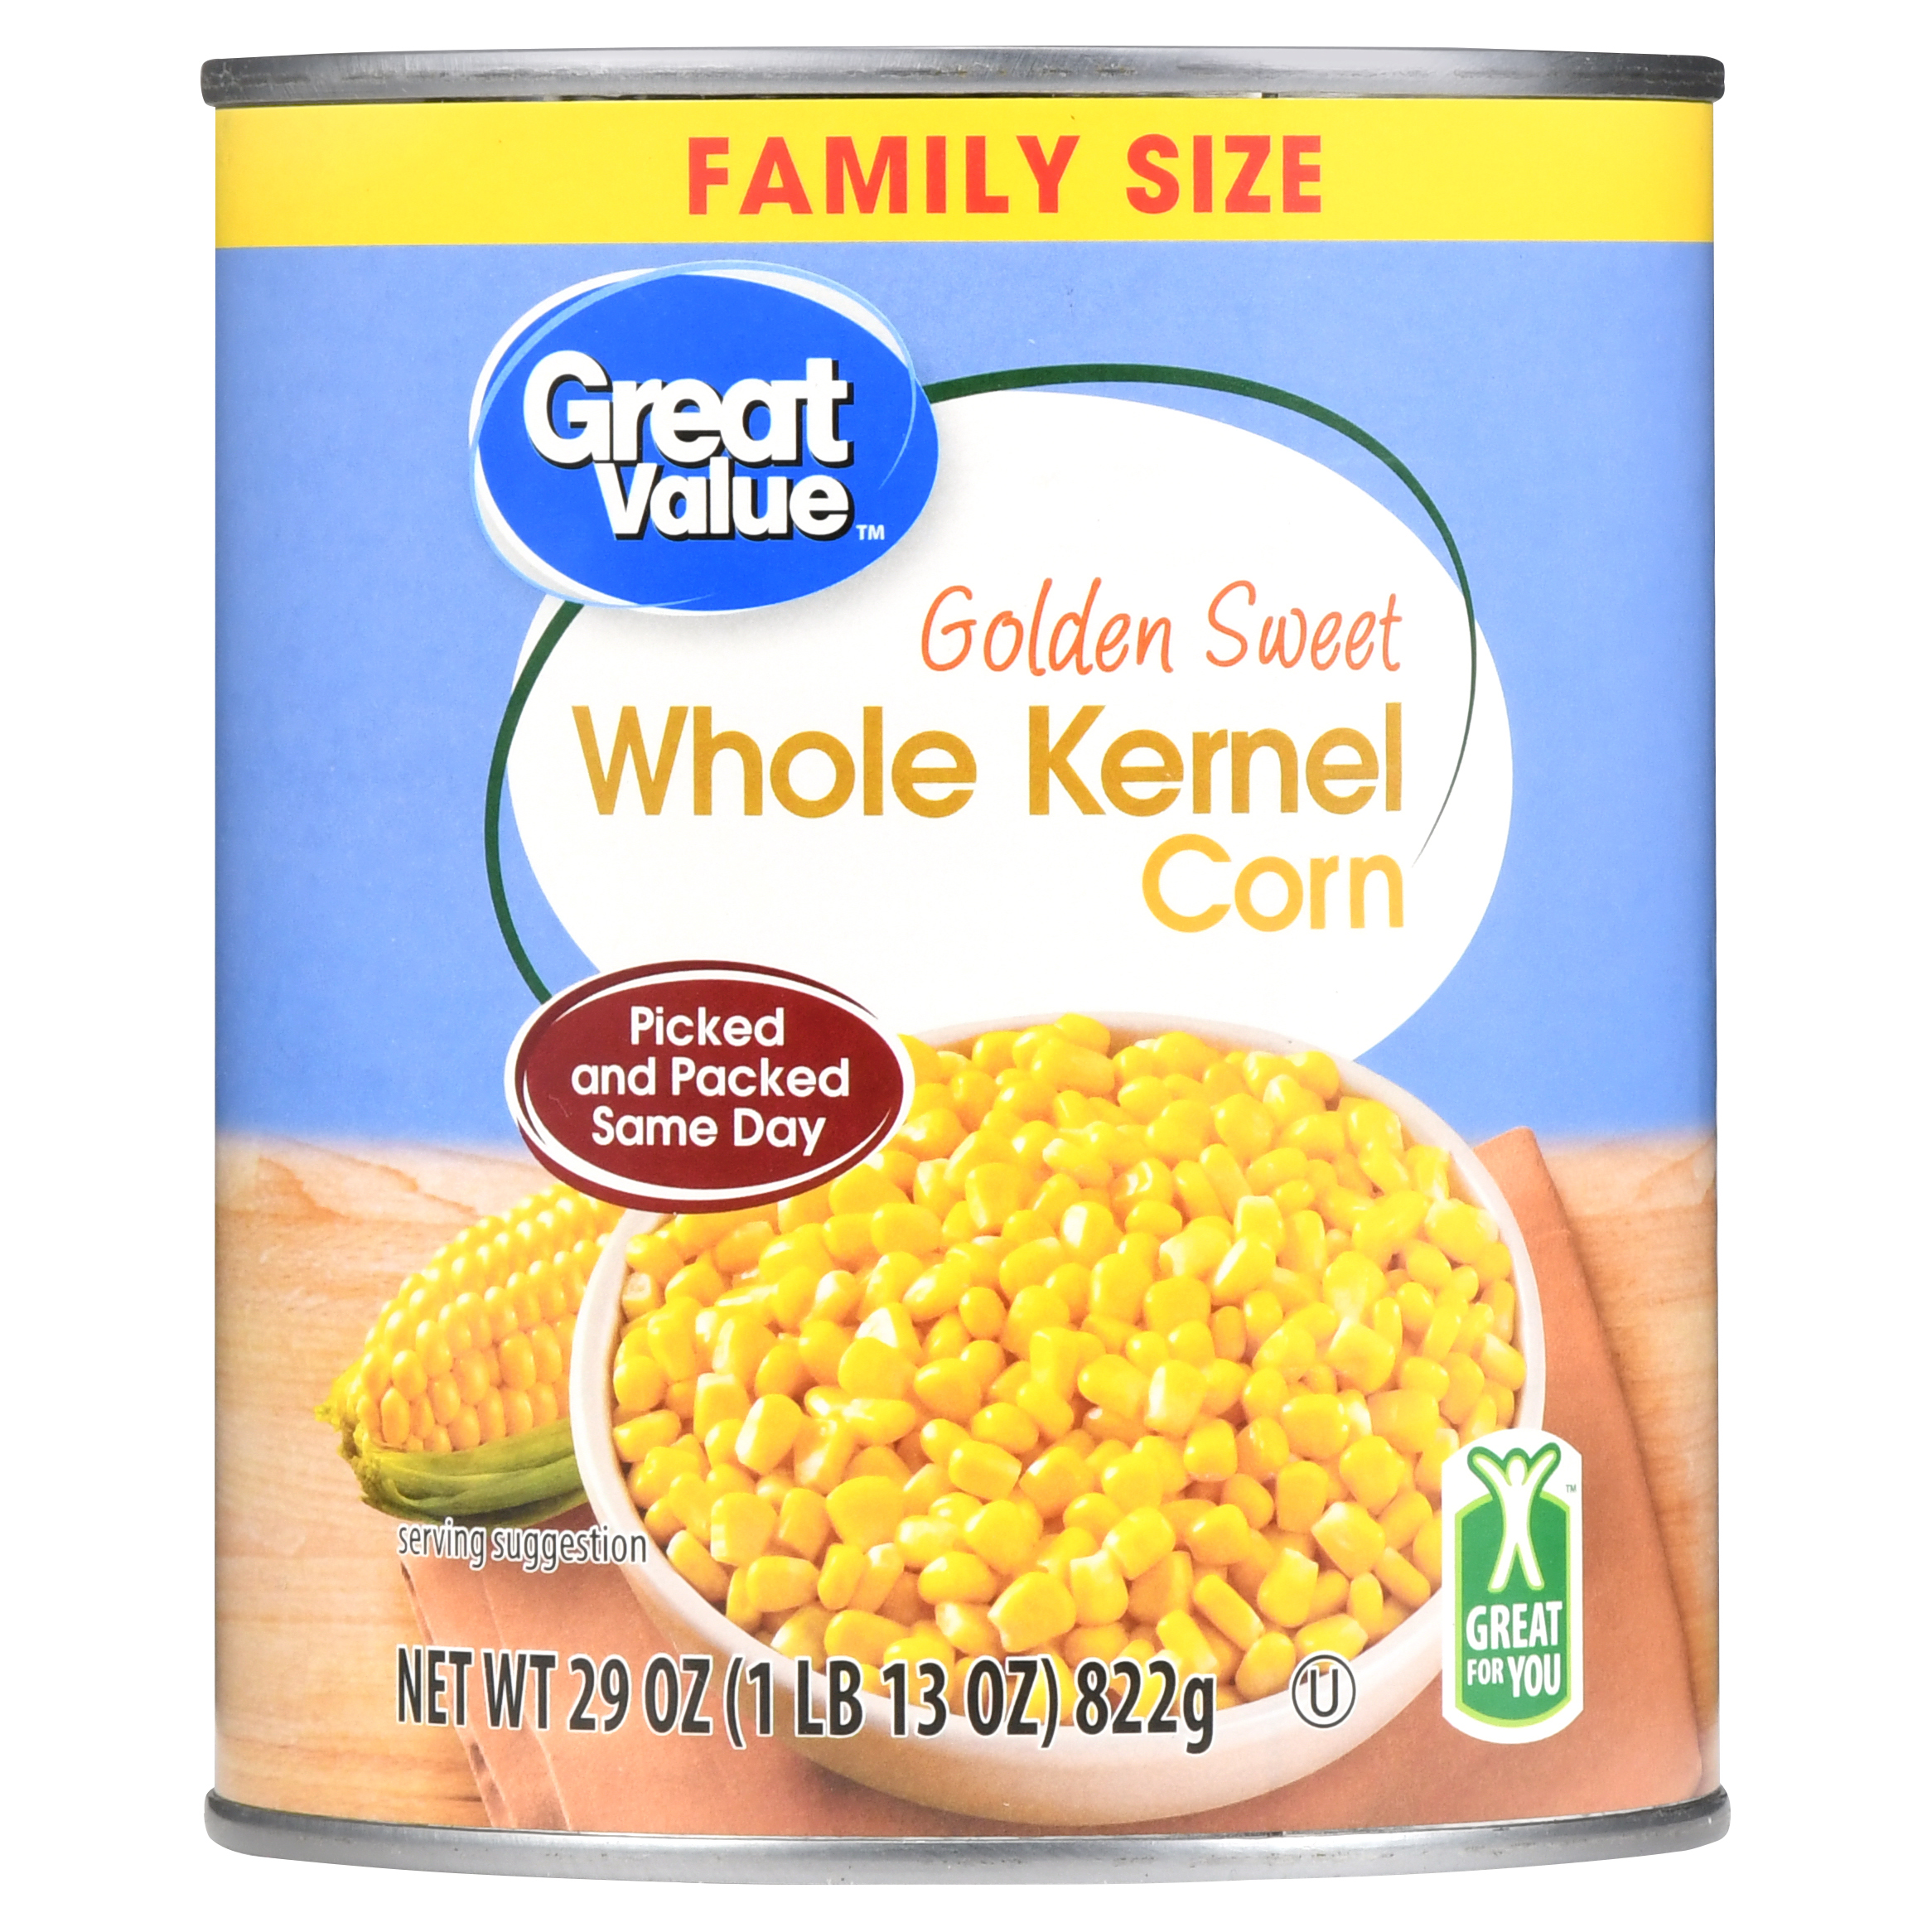 Great Value Golden Sweet Whole Kernel Corn, Family Size, 29 oz